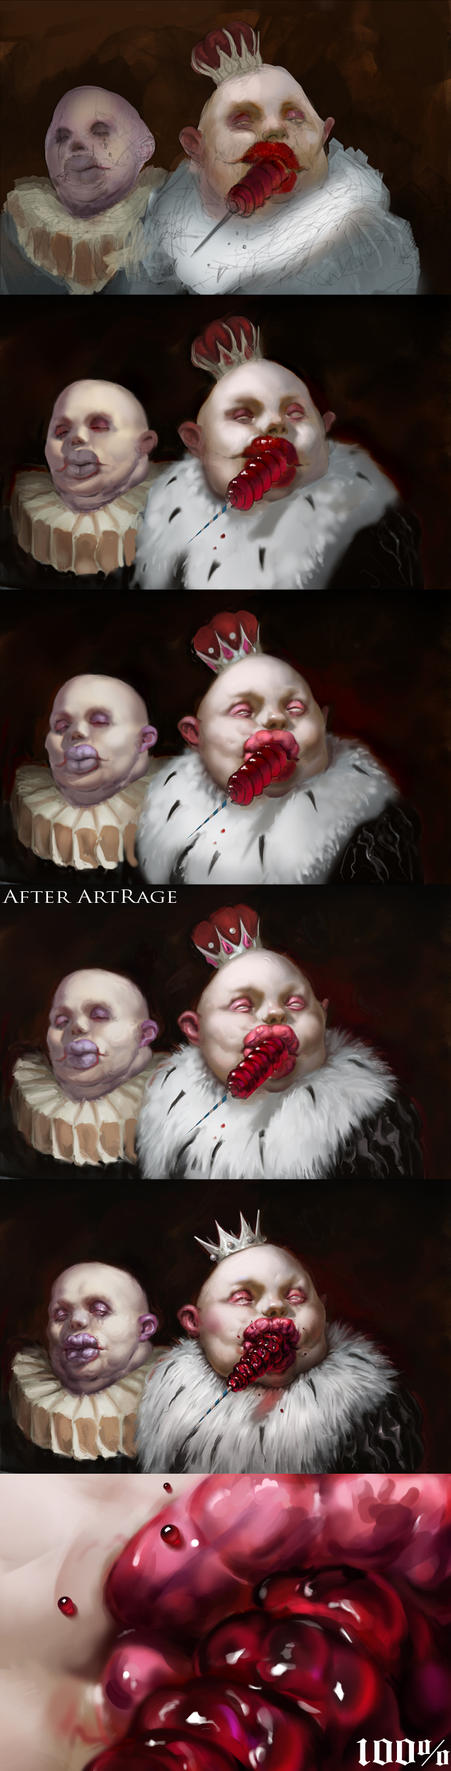 Michael Hussar Tribute - Steps by Verehin